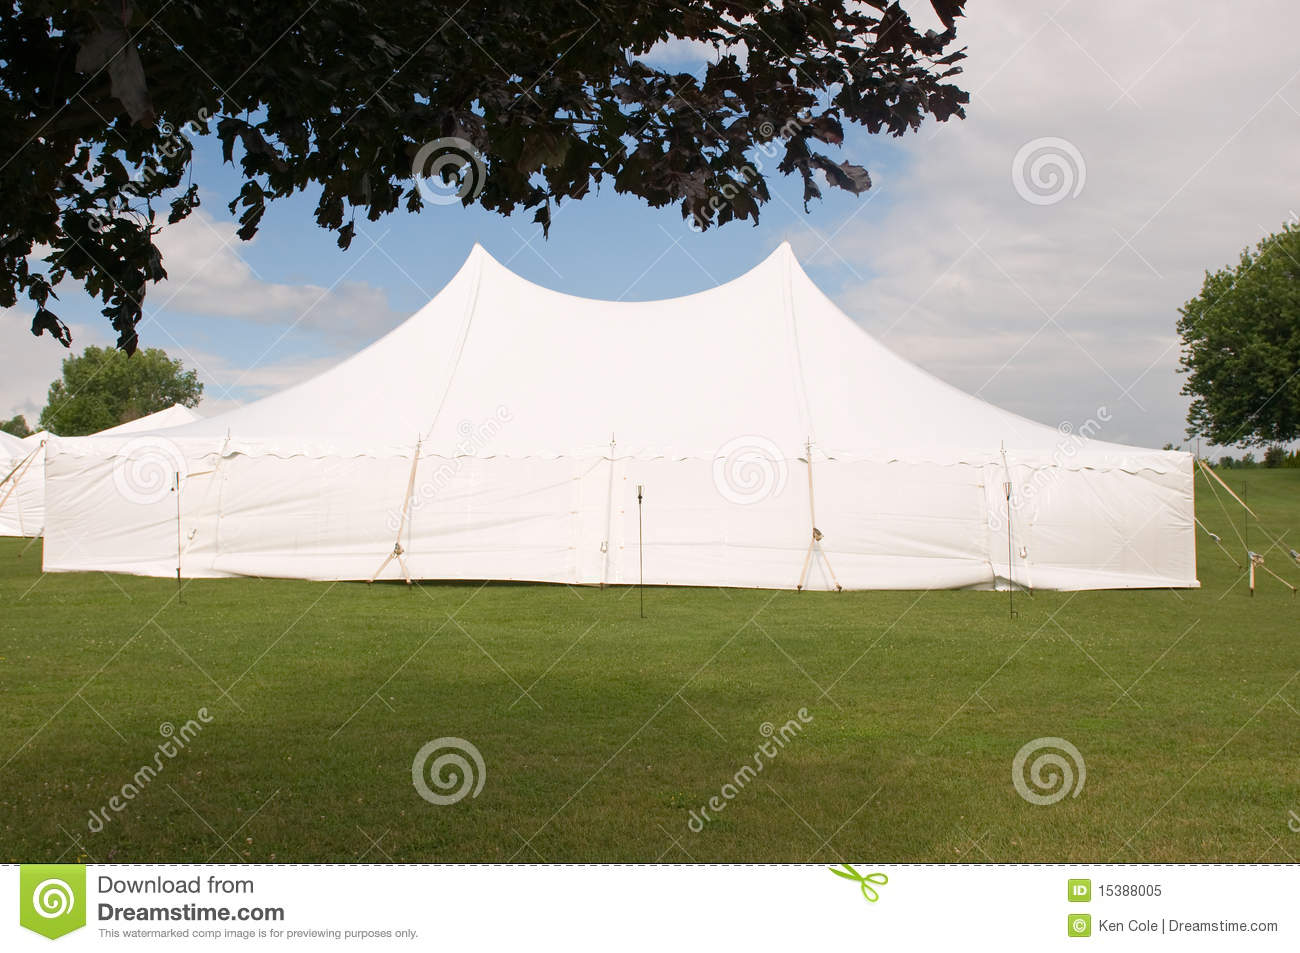 White wedding party tent & White wedding party tent stock image. Image of special - 15388005